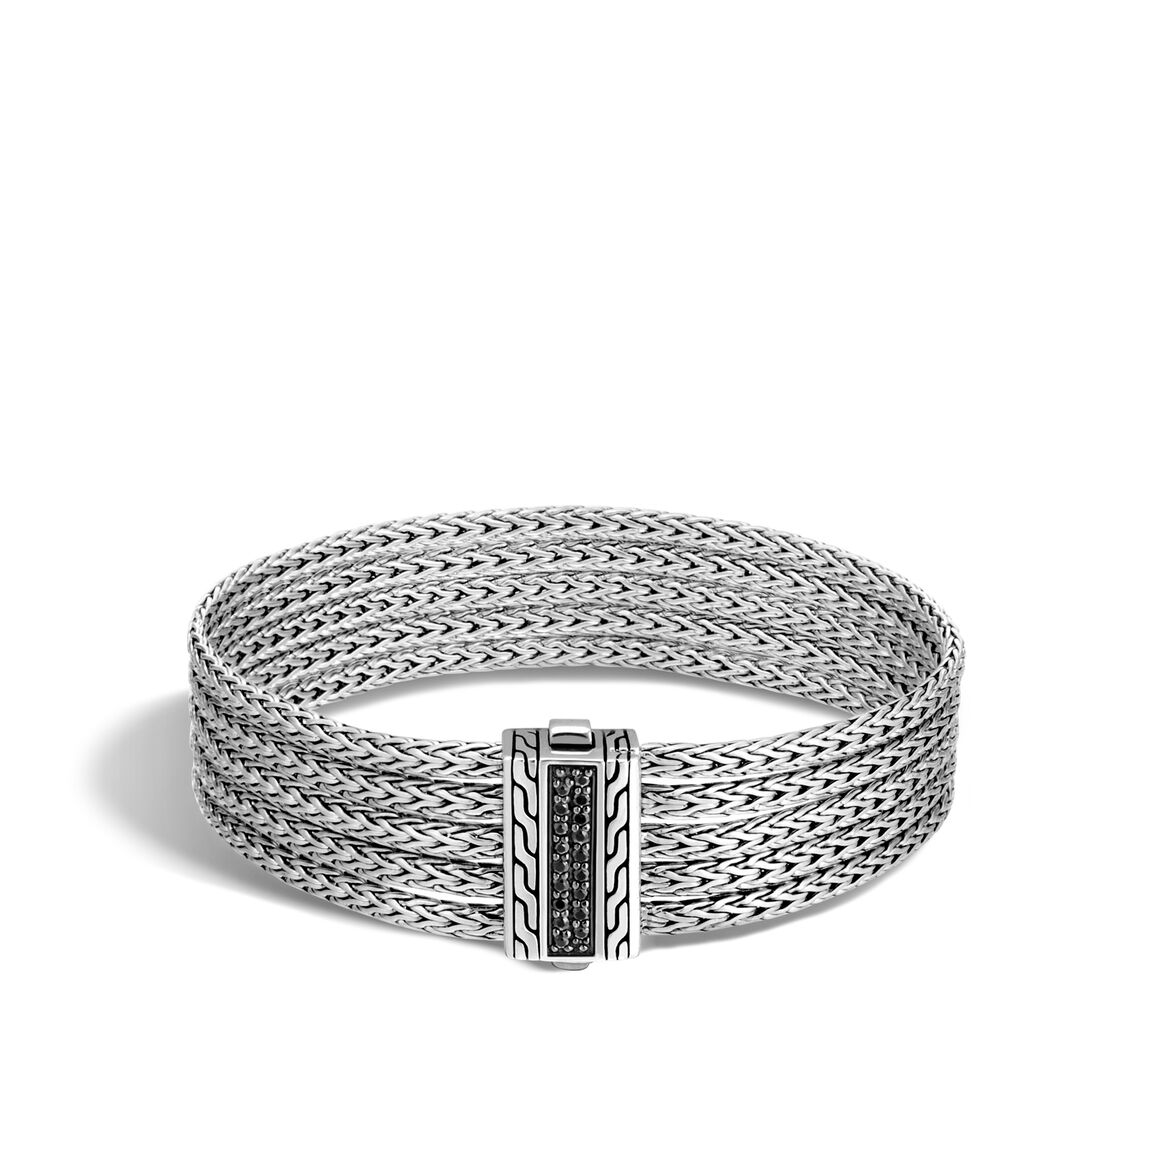 Classic Chain Five Row Bracelet in Silver with Gemstone